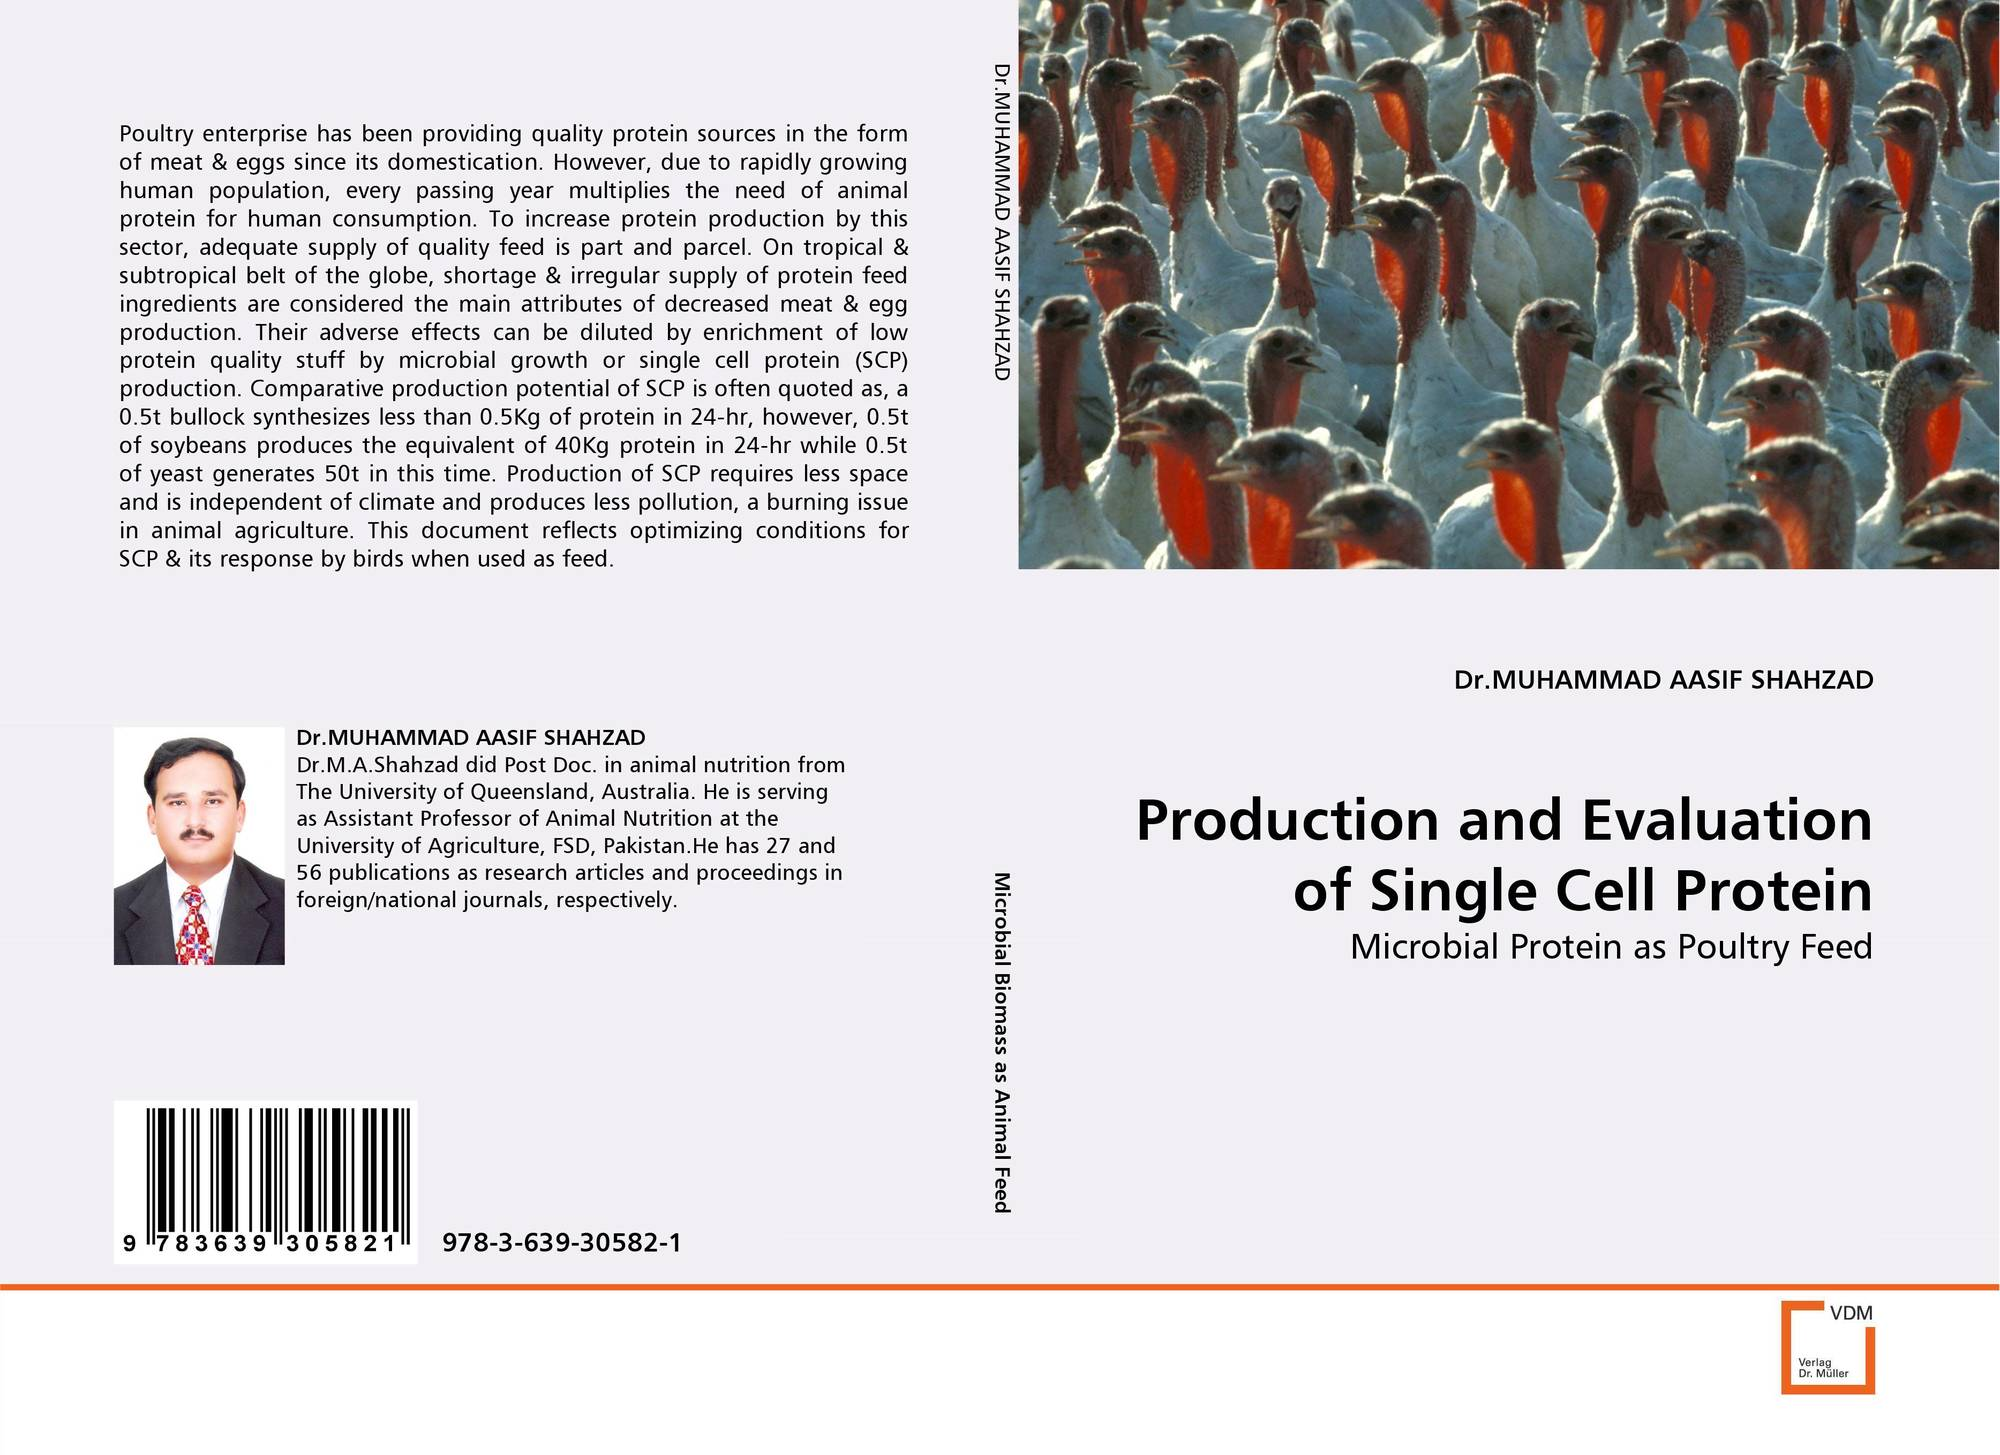 production of single cell protein biology essay Diets supplemented with single-cell protein meal may support farmed trout production, feed efficiency and boost survival rates, says researcher.